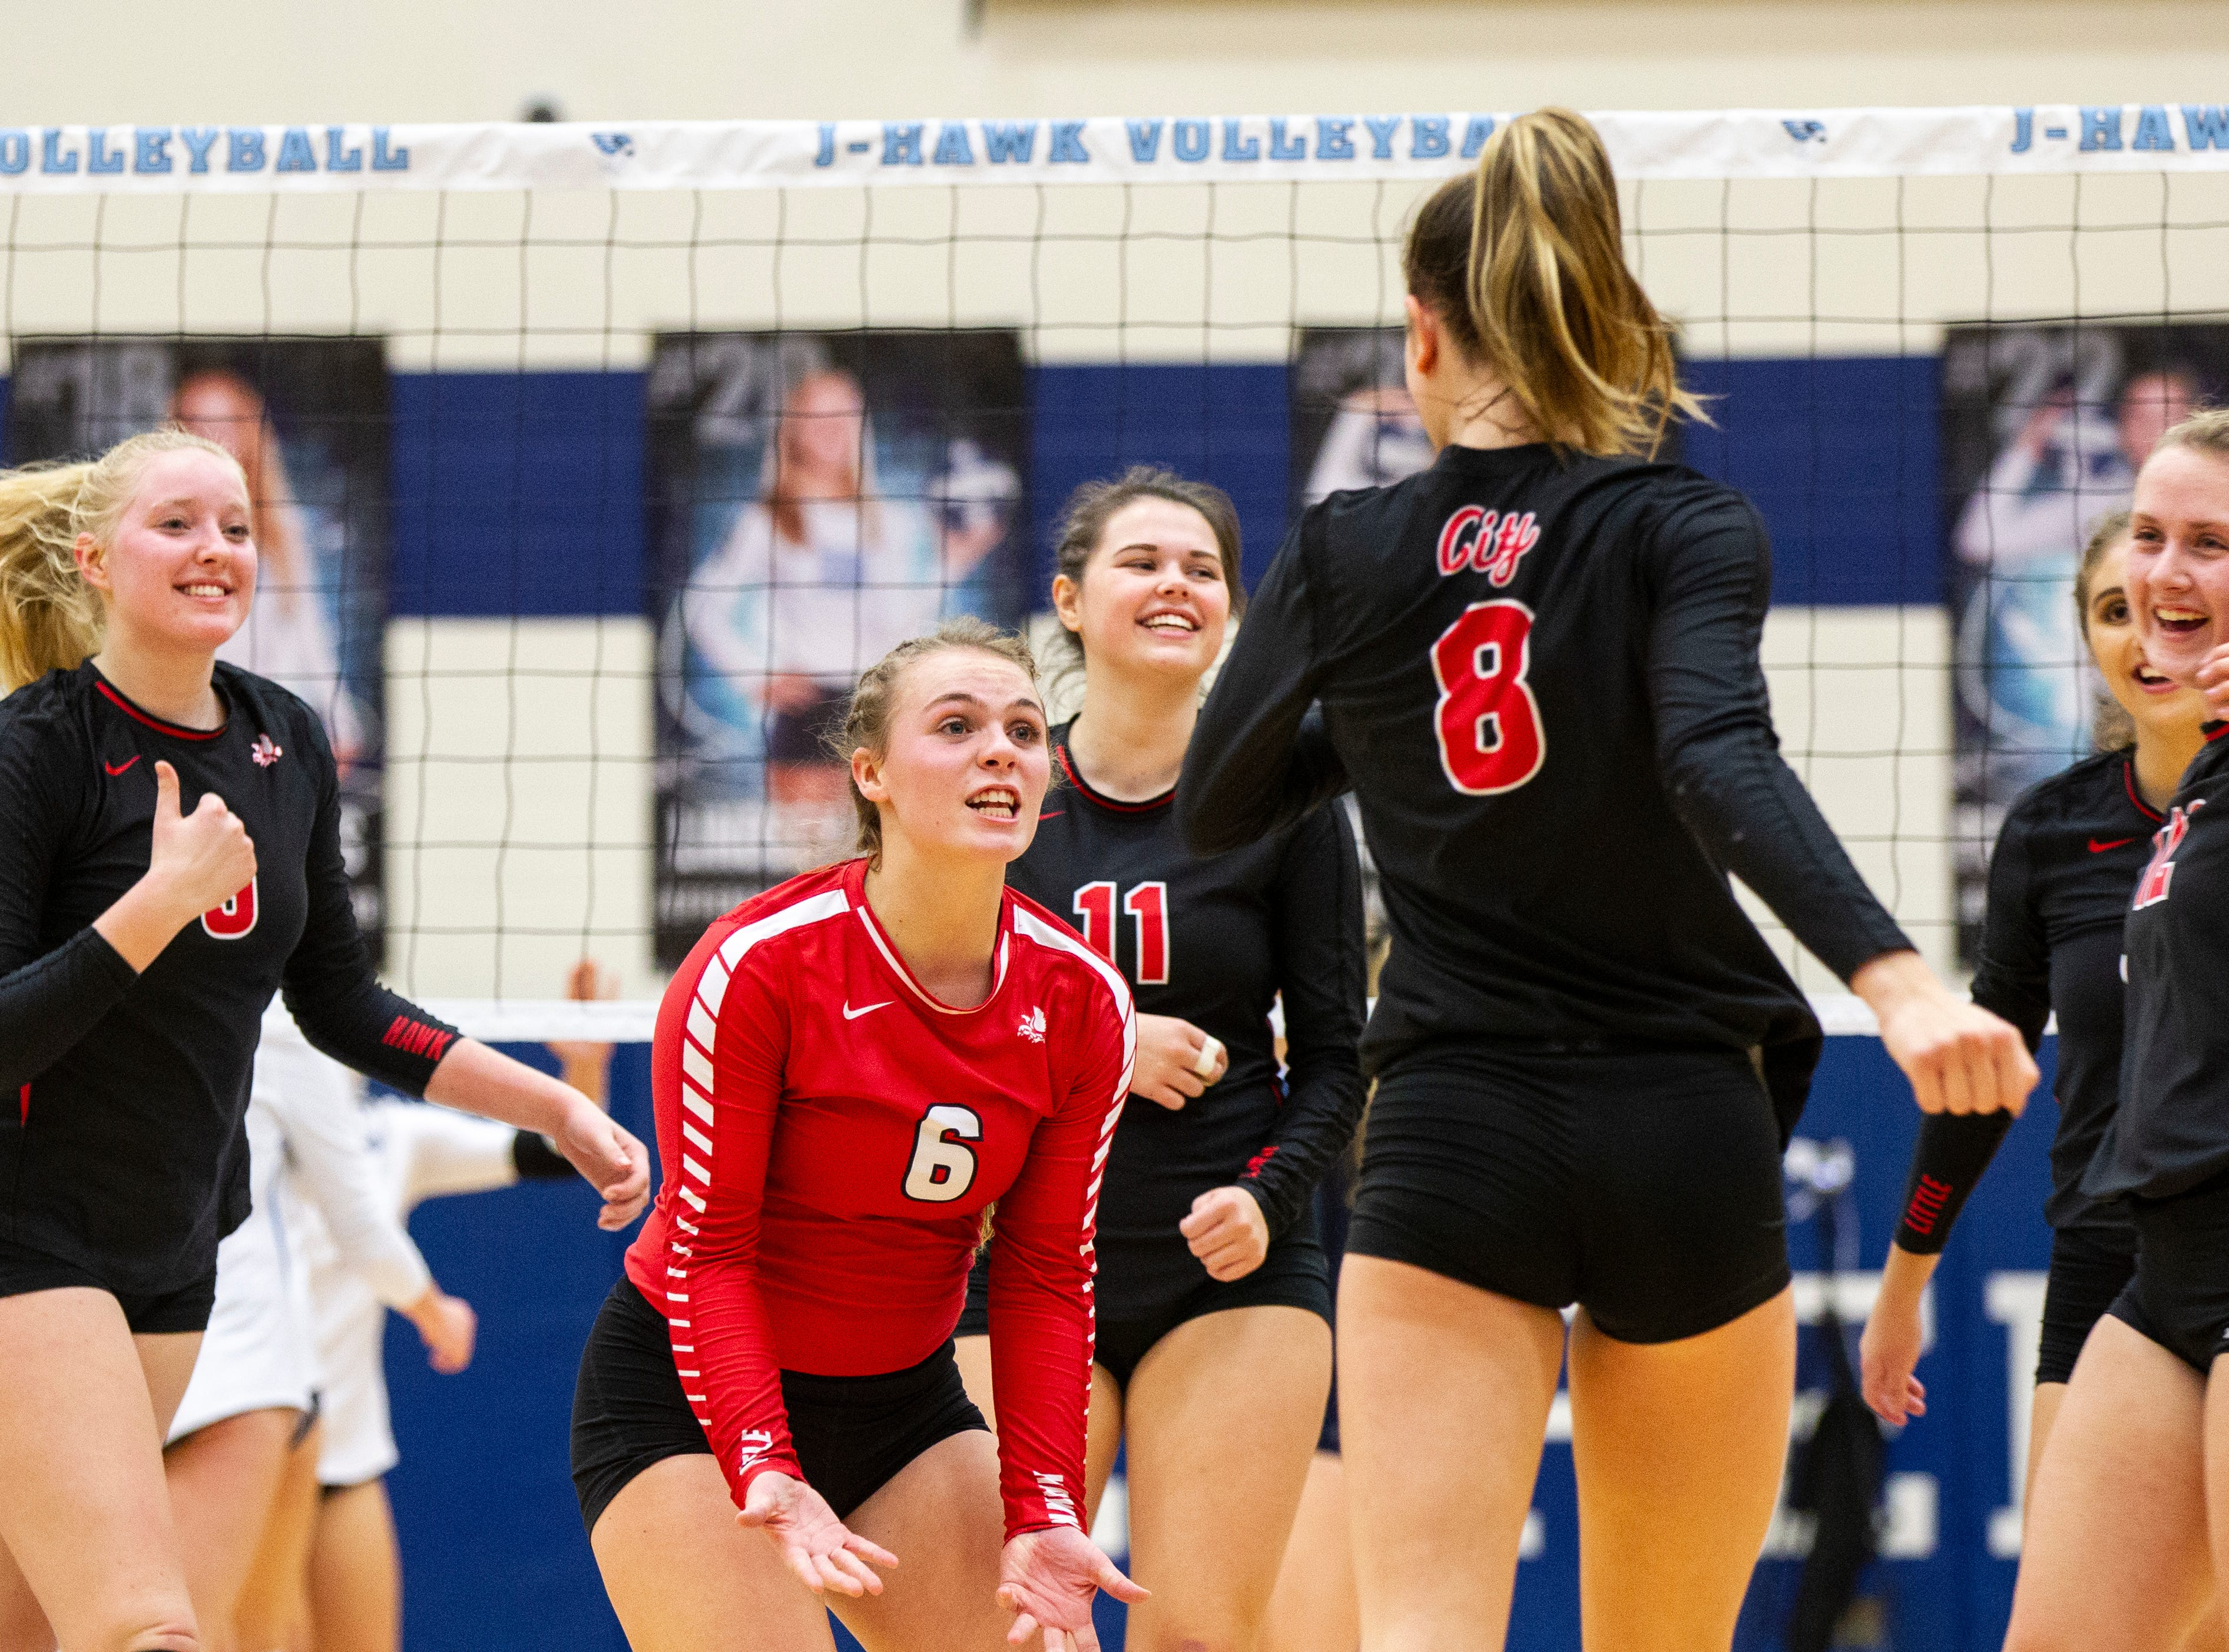 Iowa City High's Brooke Bormann (6) celebrates with teammates during a Class 5A volleyball regional final game on Monday, Oct. 29, 2018, at Jefferson High School in Cedar Rapids.